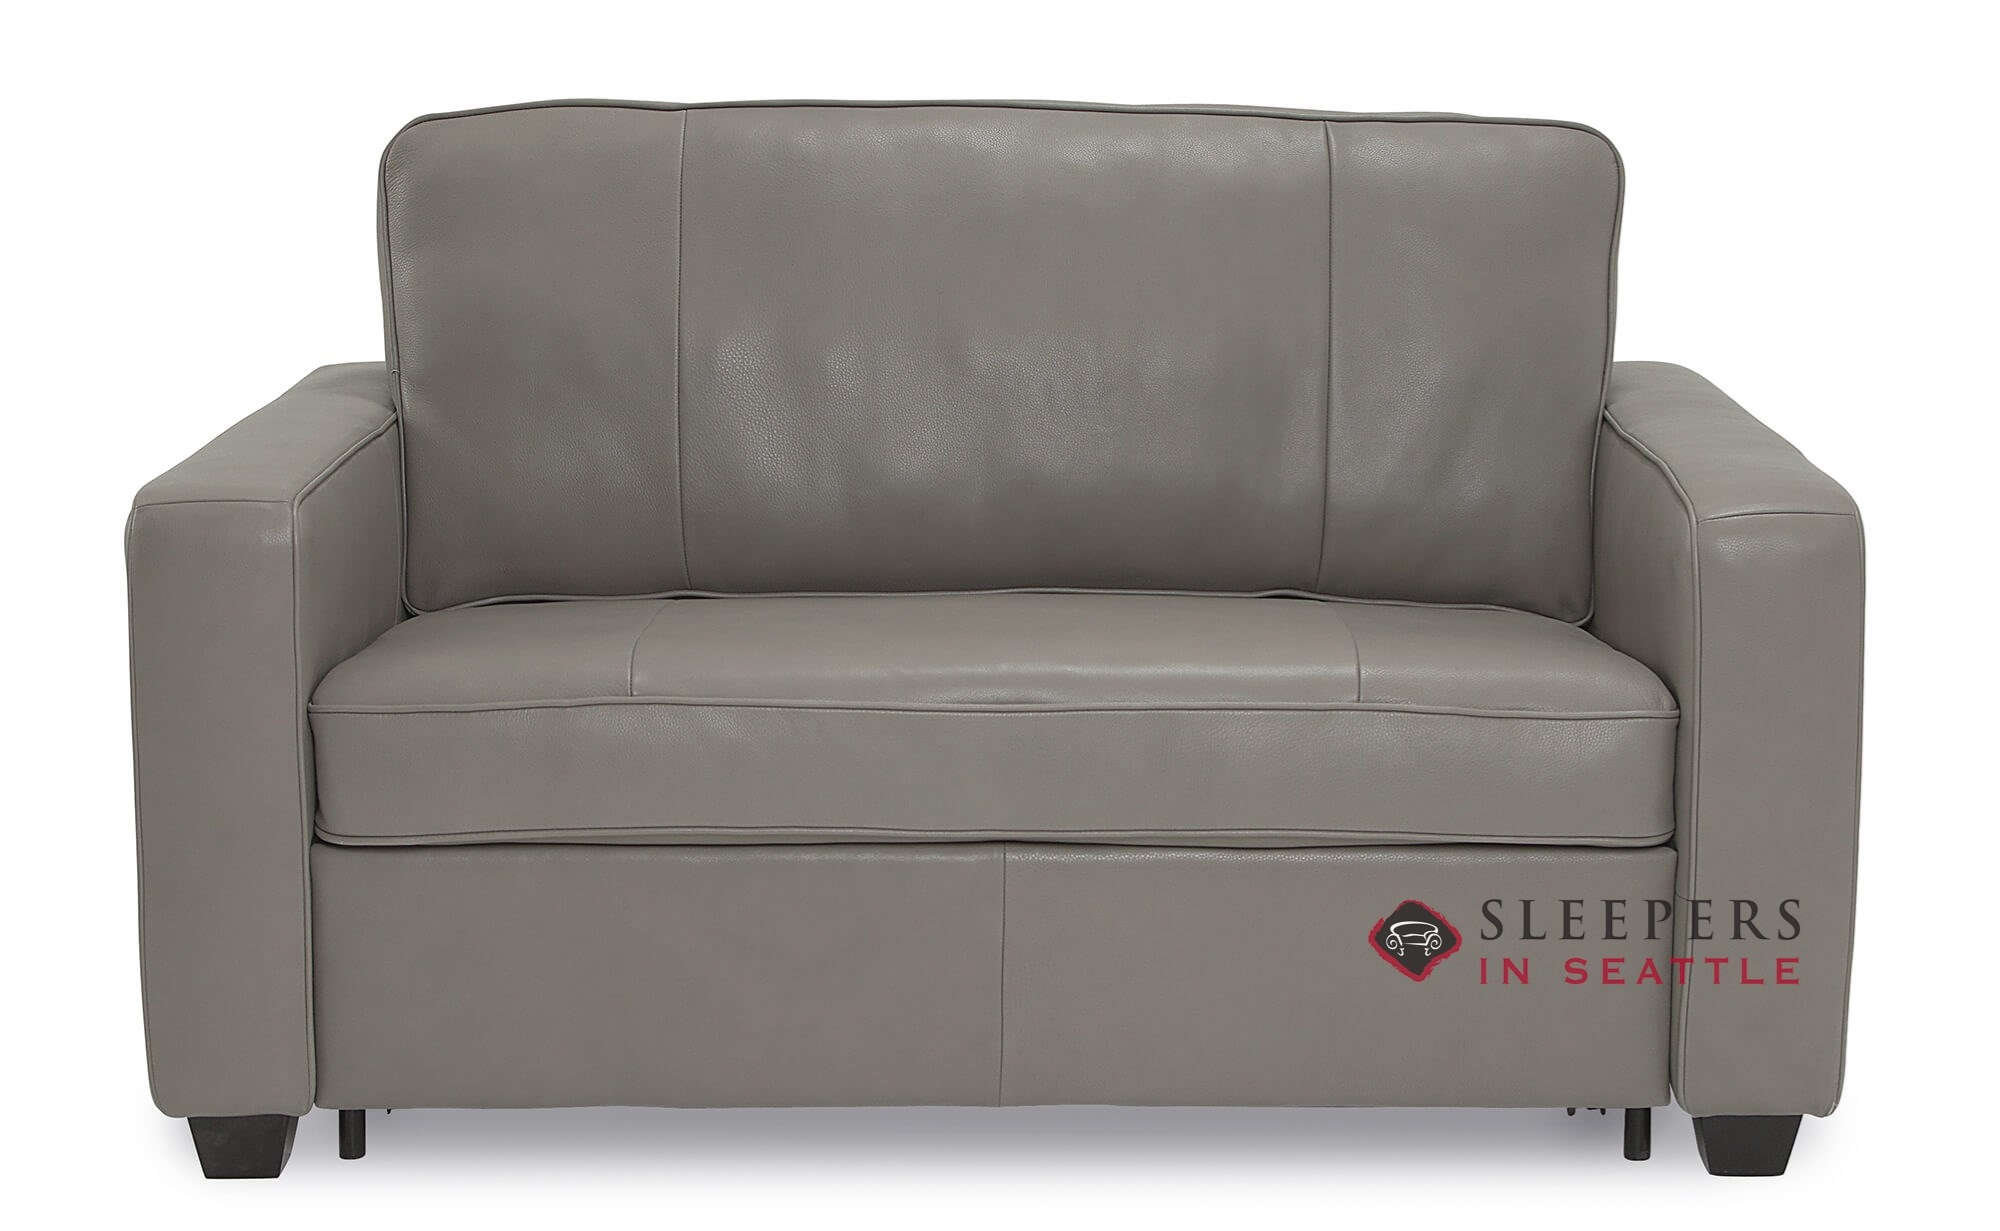 Customize And Personalize Anya Twin Leather Sofa By Palliser Twin Size Sofa Bed Sleepersinseattle Com